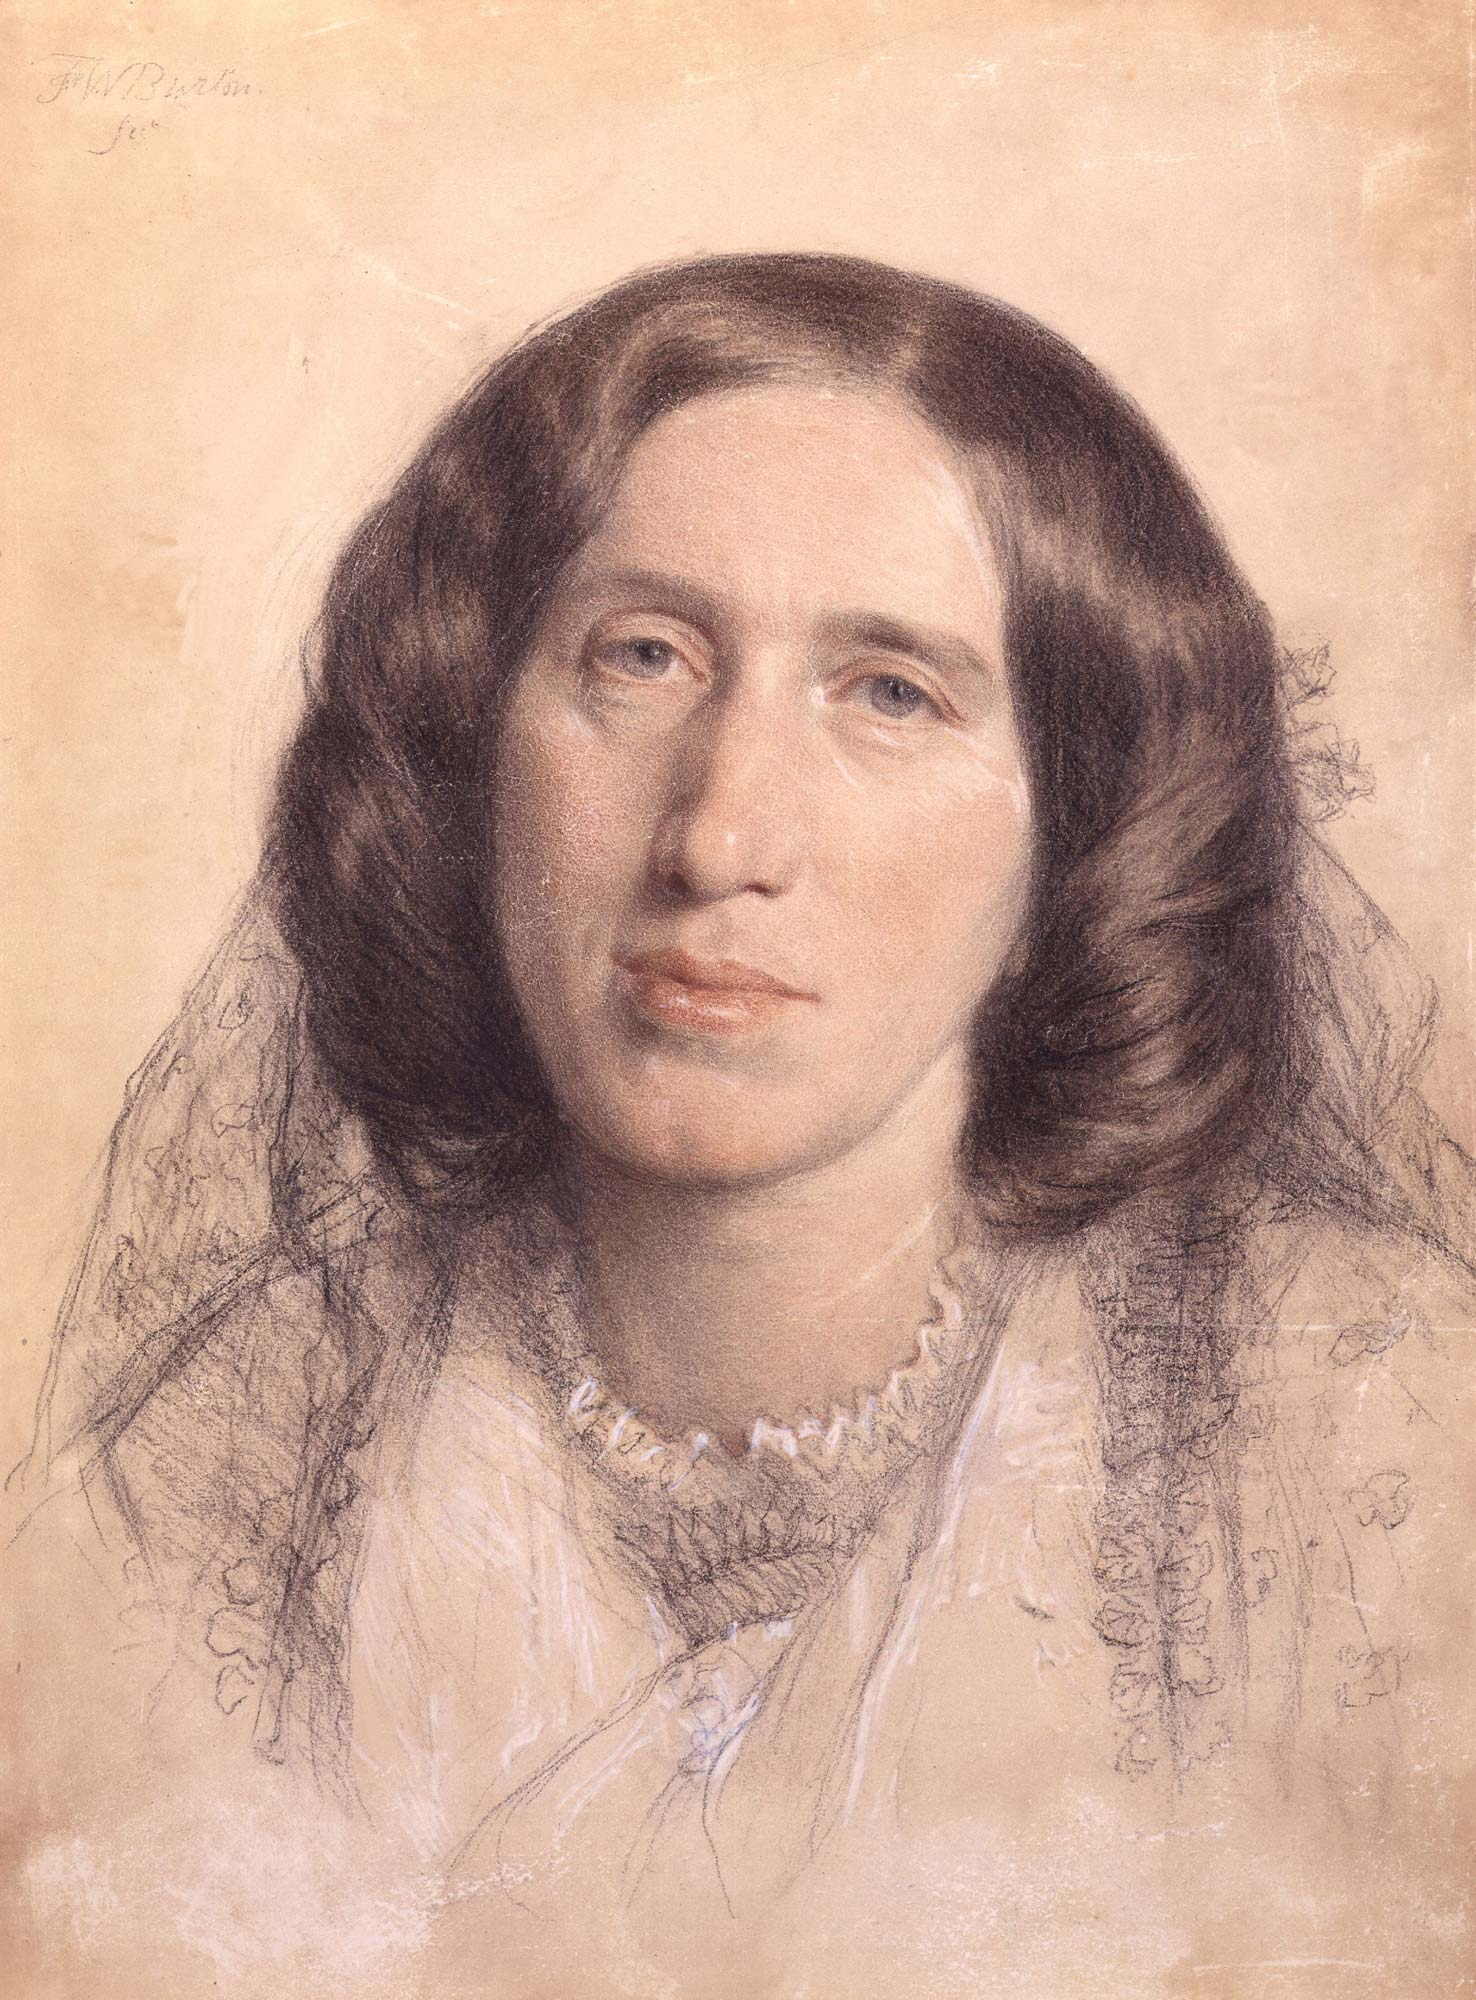 George Eliot (Mary Ann Evans), author of Middlemarch, Adam Bede and The Mill on the Floss. Portrait by Sir Frederic William Burton © National Portrait Gallery, London.